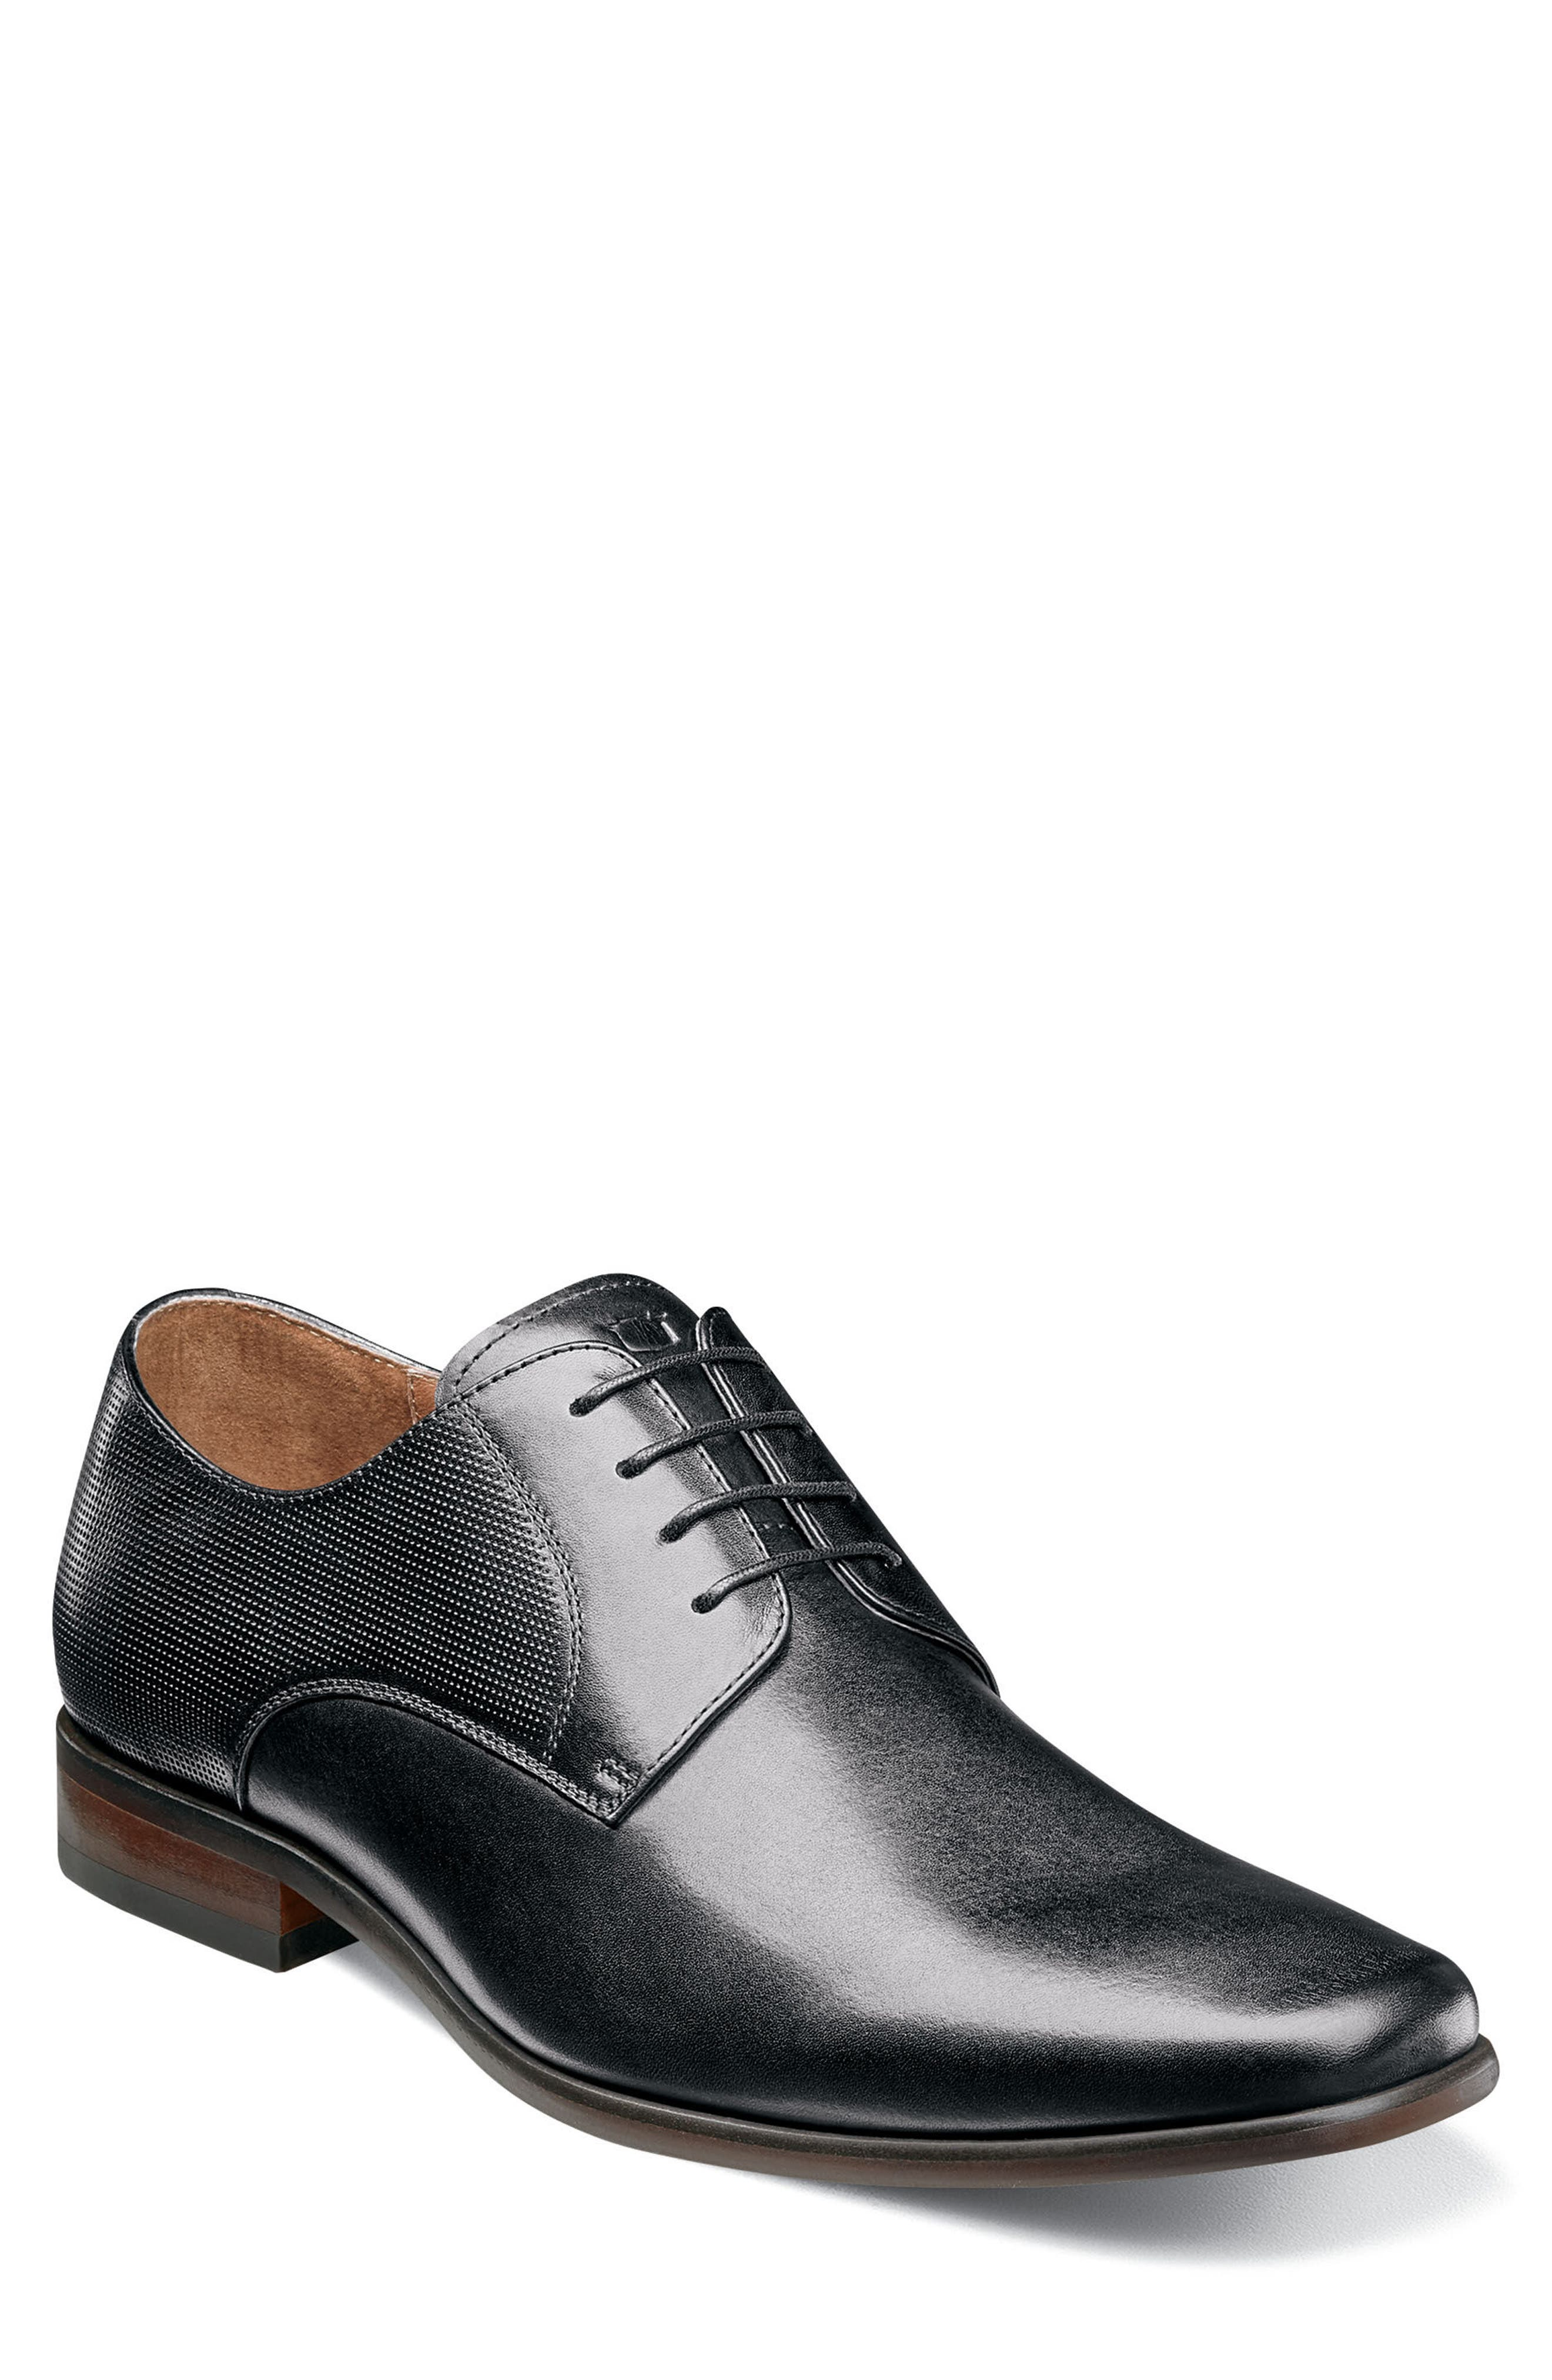 Postino Textured Plain Toe Derby,                         Main,                         color, BLACK LEATHER